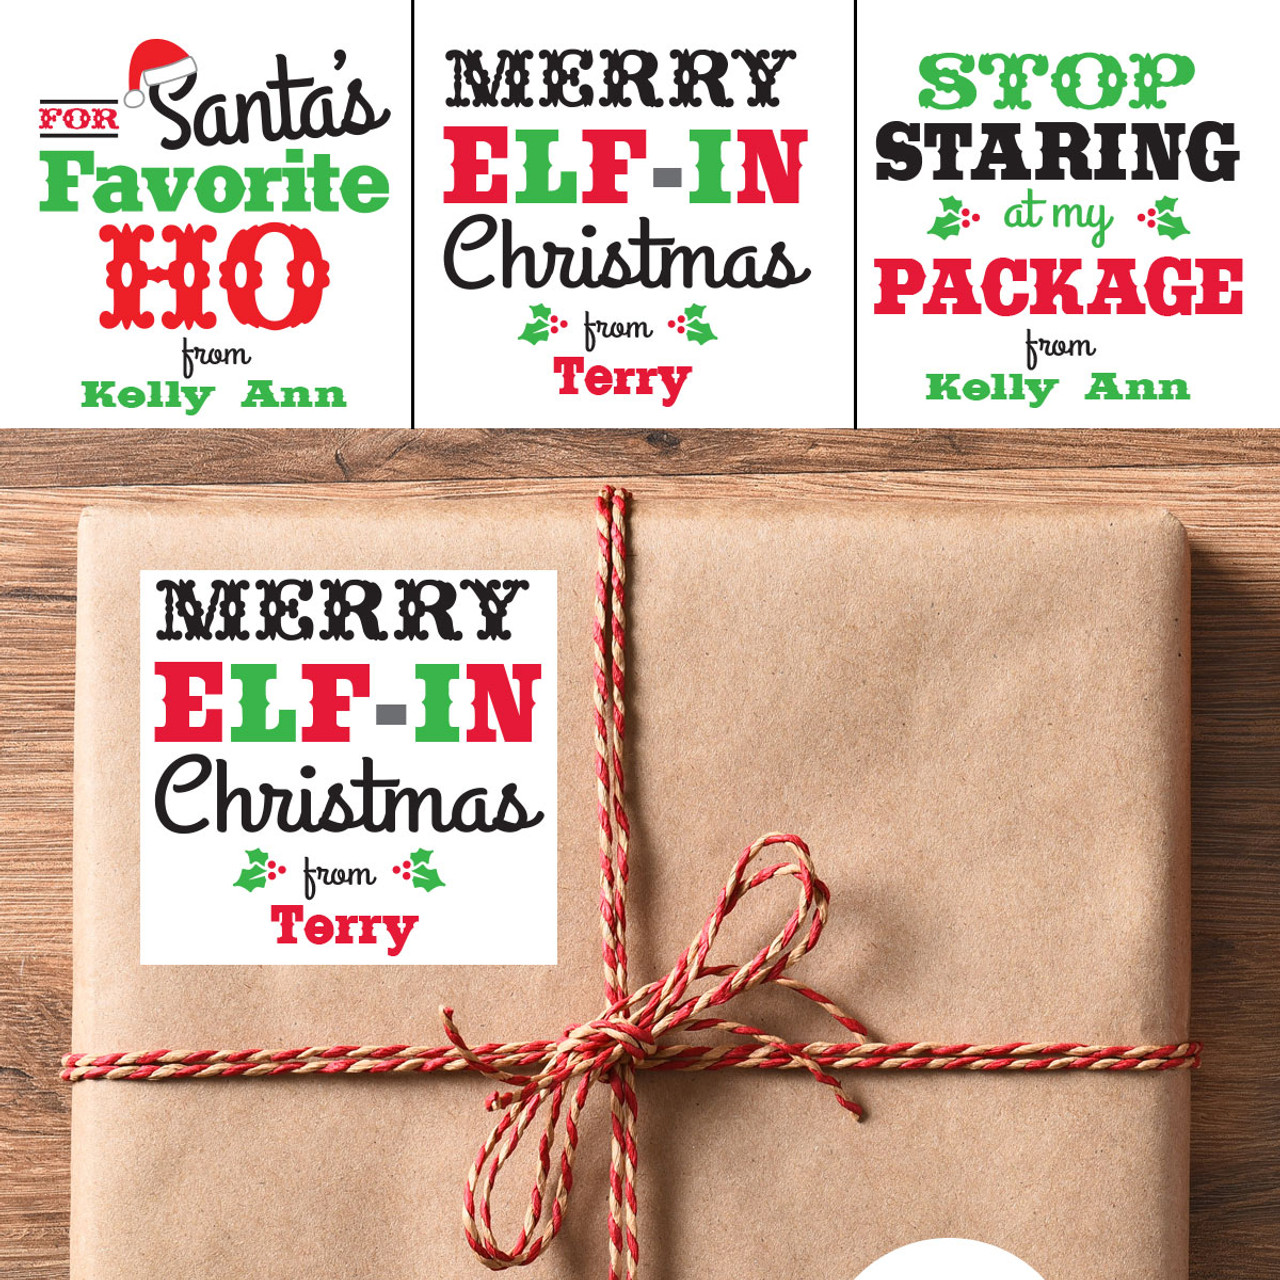 Personalized Christmas Gifts.Personalized Merry Elf In Christmas Gift Stickers